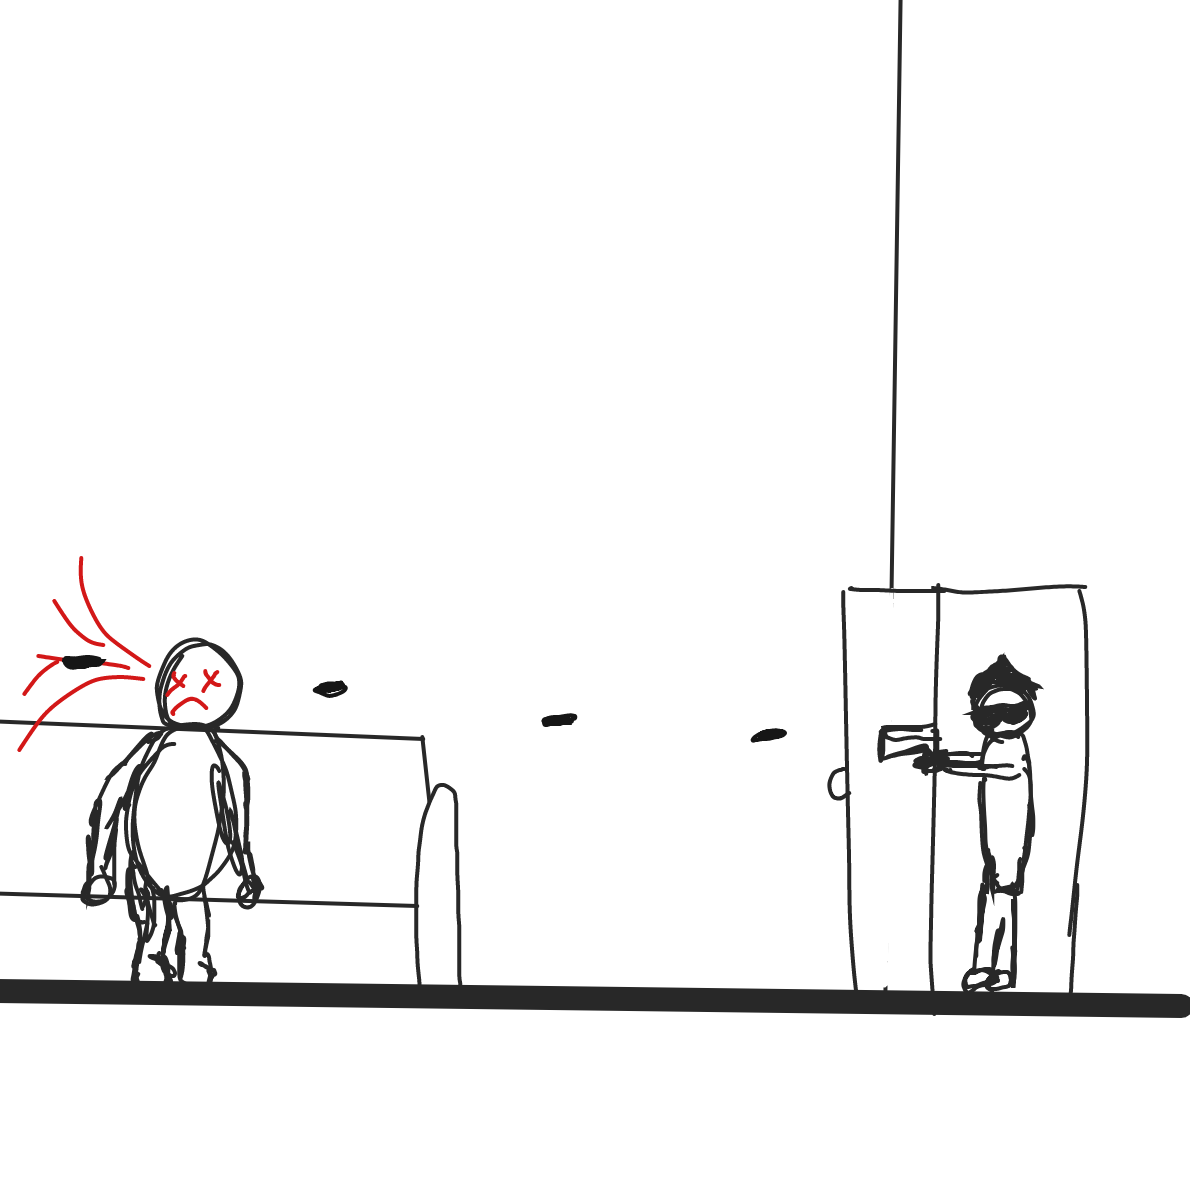 - Online Drawing Game Comic Strip Panel by James